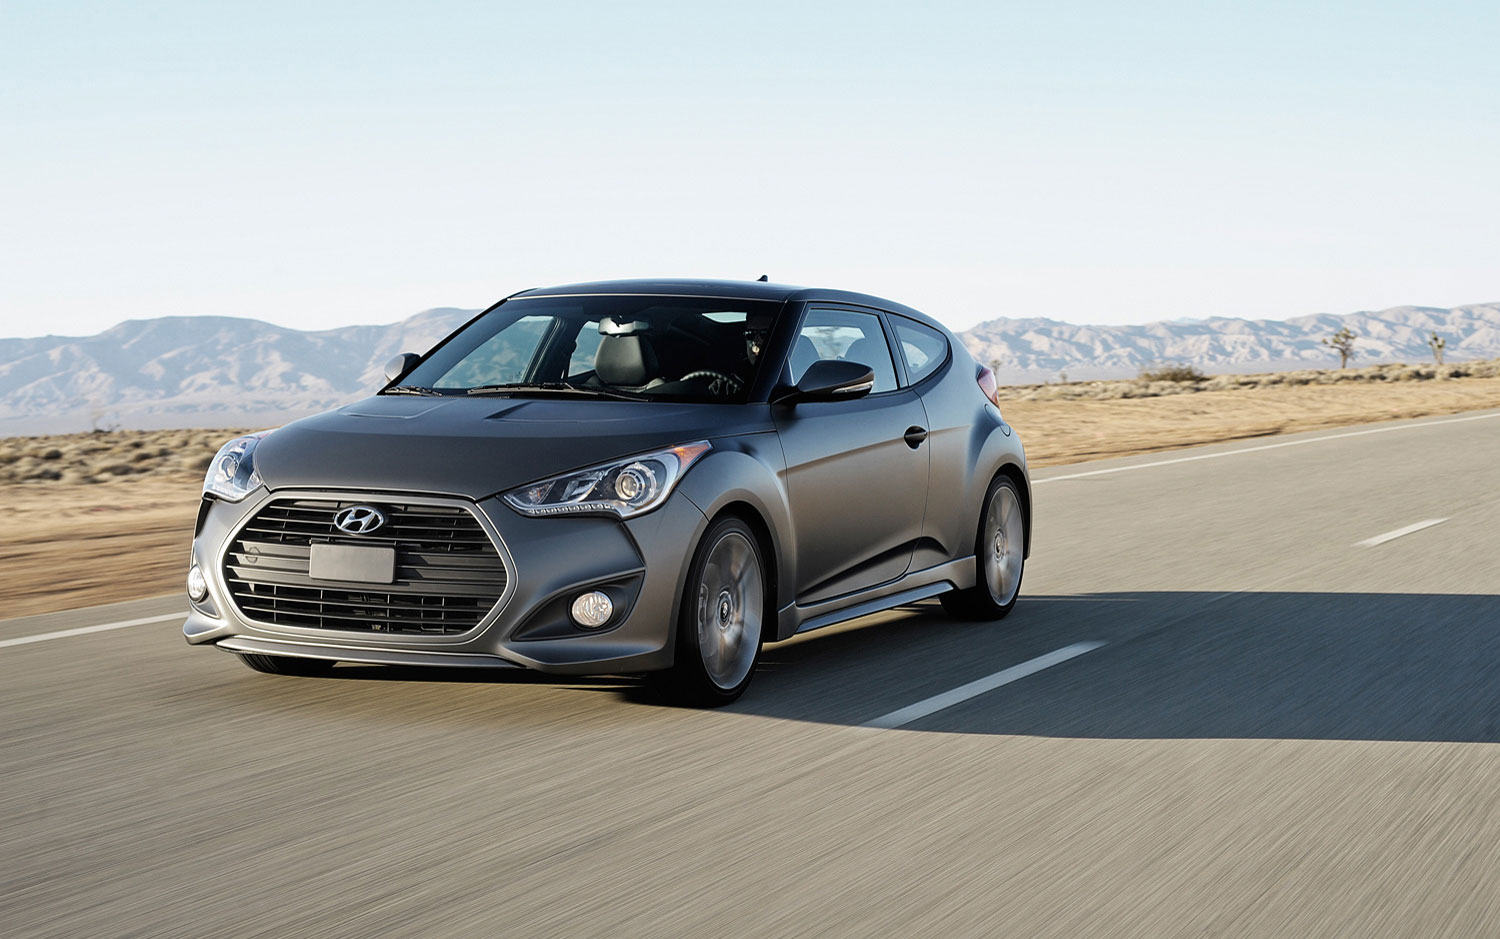 cars model 2013 2014 2013 hyundai veloster turbo. Black Bedroom Furniture Sets. Home Design Ideas